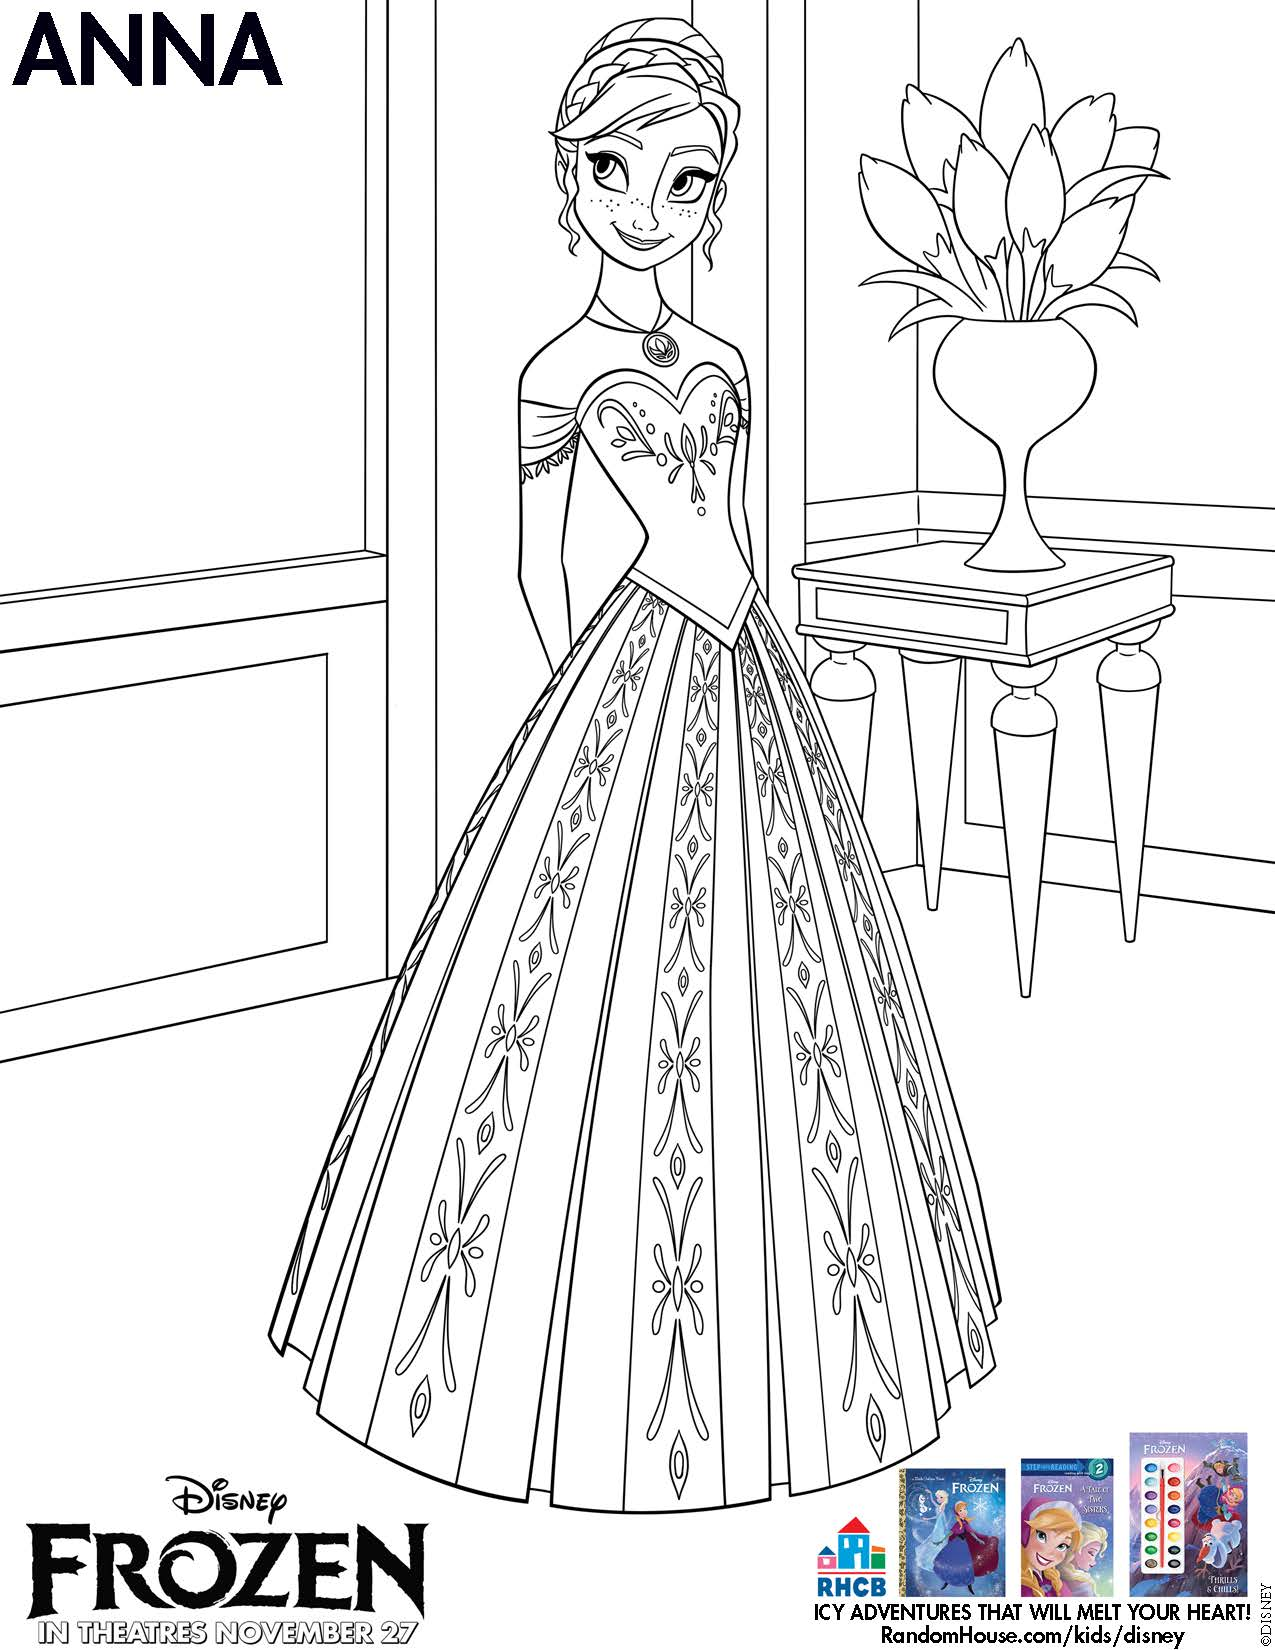 Disney S Frozen Printables Coloring Pages And Storybook App Frozen Coloring Pages Printable